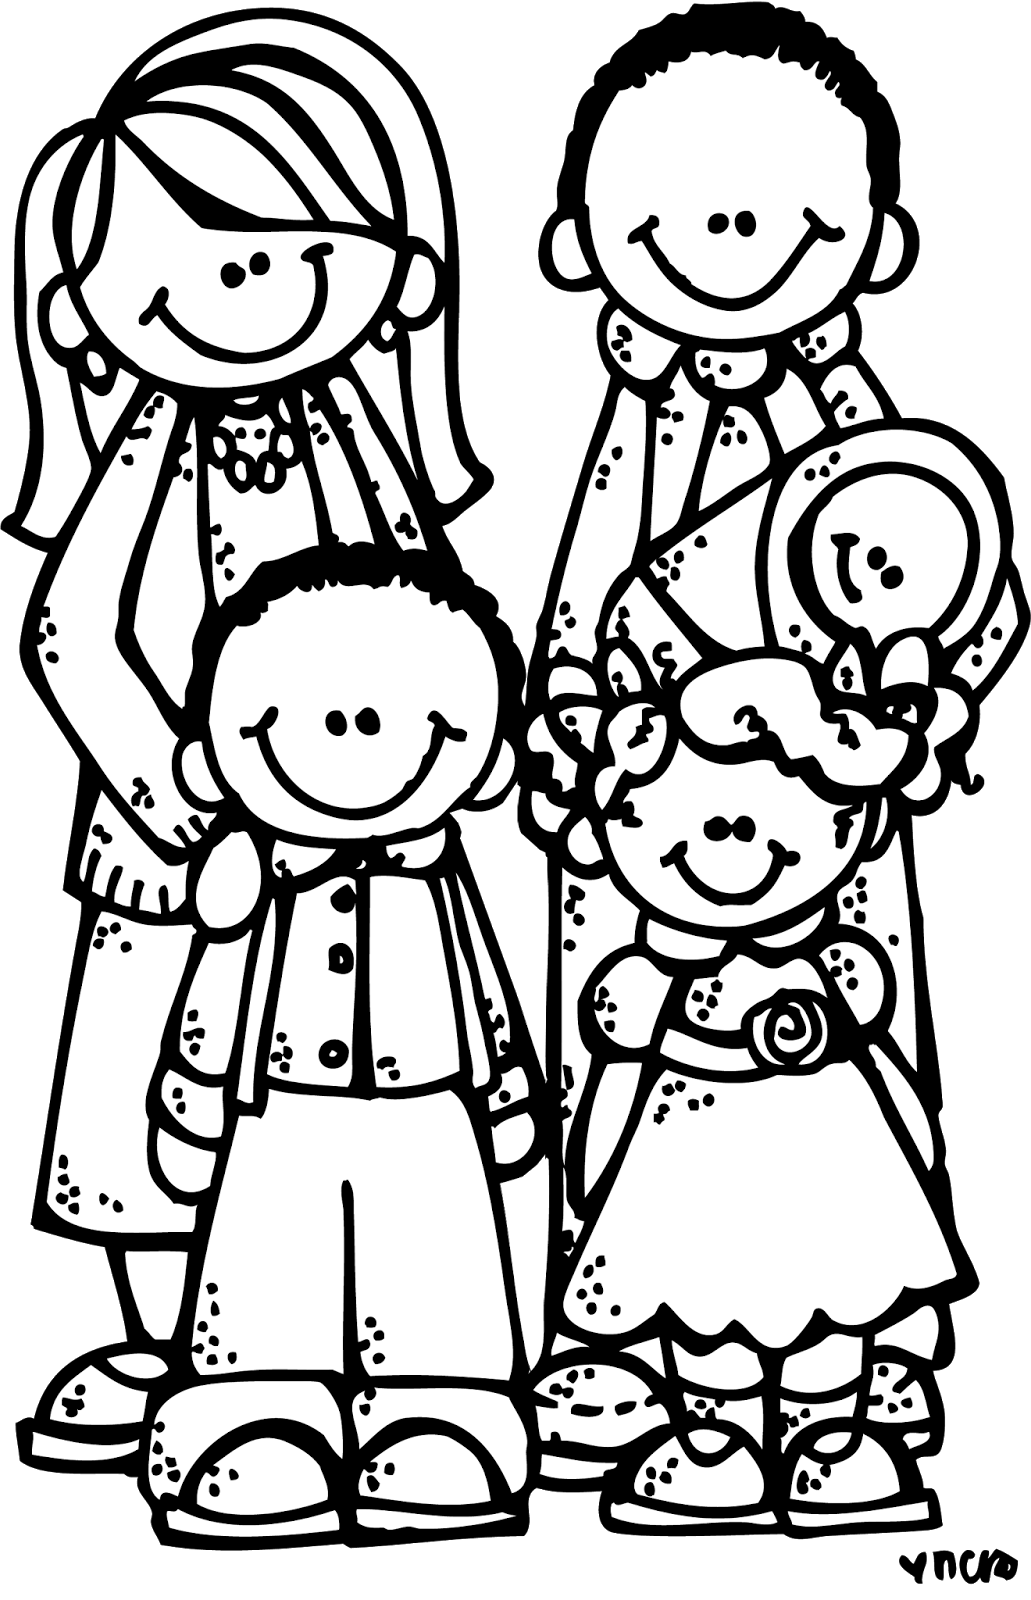 church family coloring pages more conference inspirations bible crafts coloring family coloring church pages